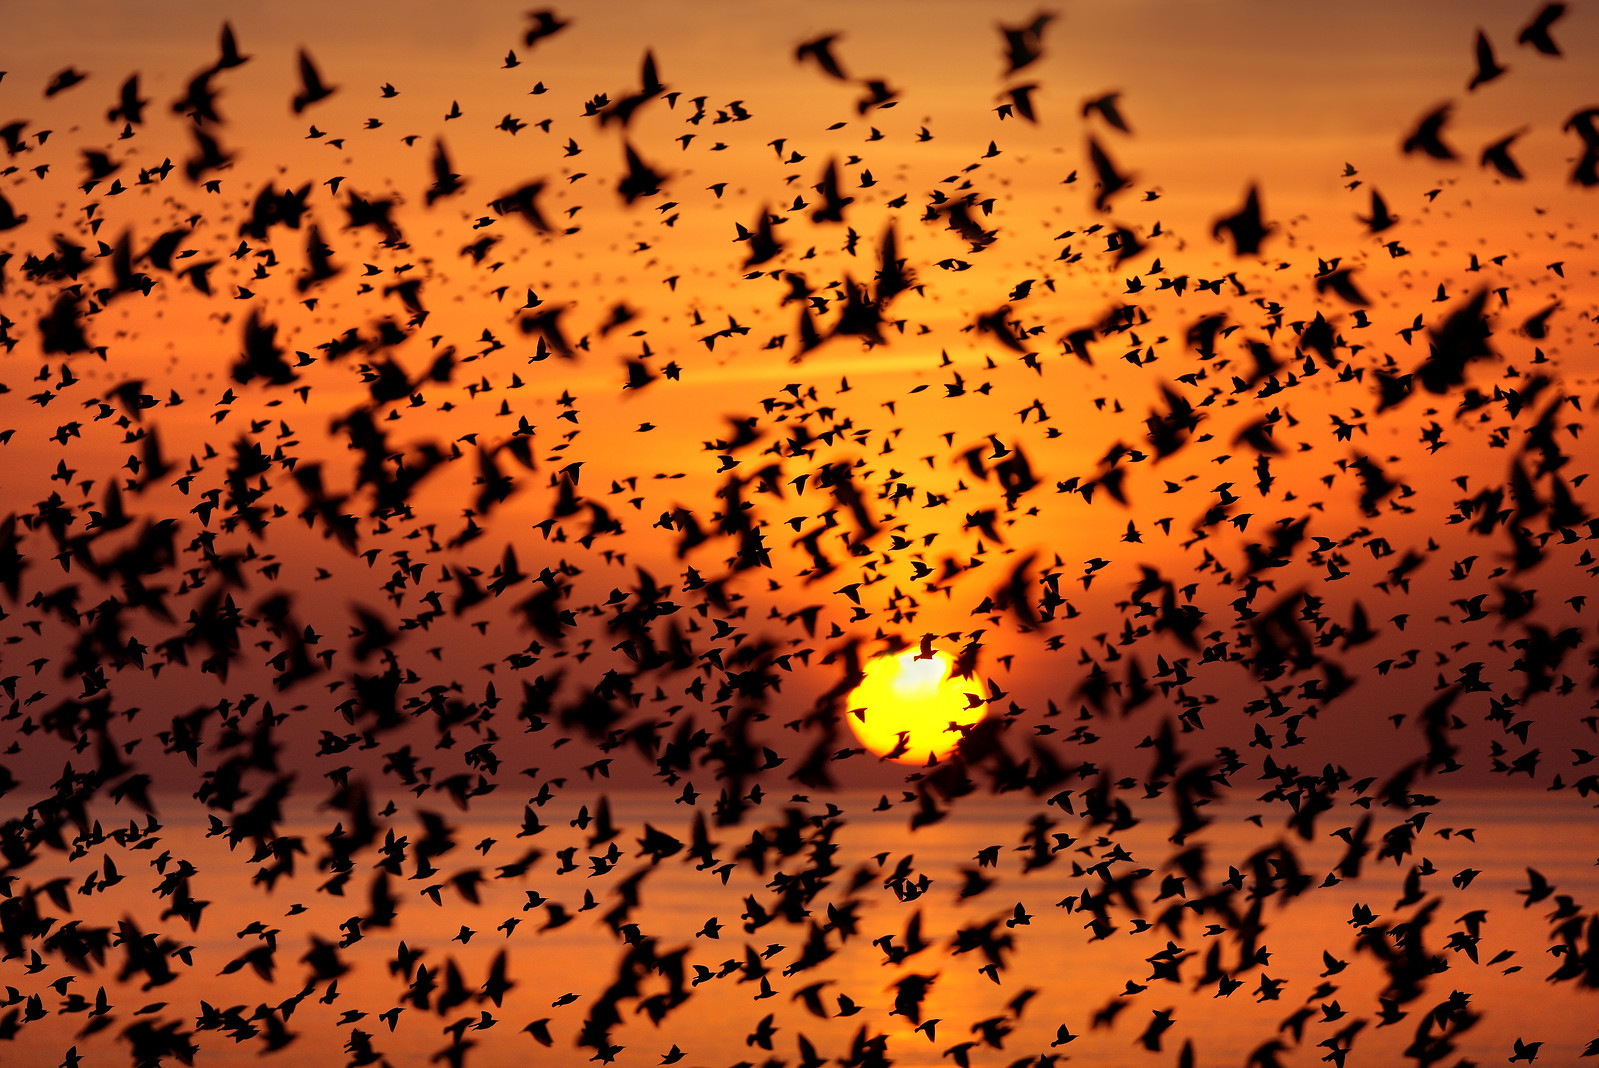 Starling Murmuration and Sunset